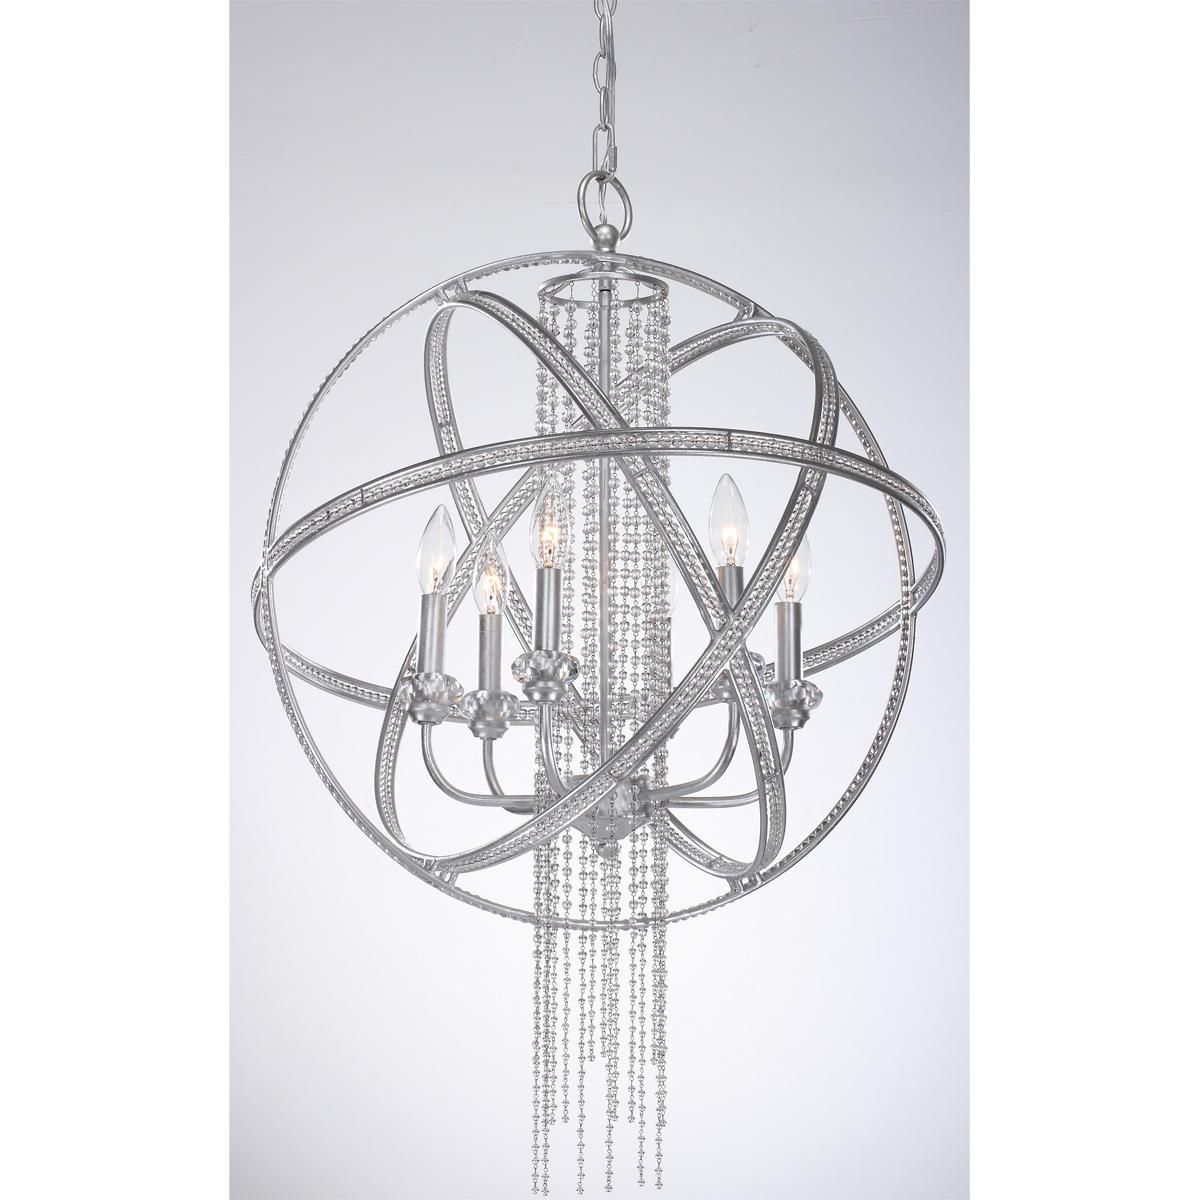 Dripping crystal sphere chandelier 6 light our new home kitchen dripping crystal sphere chandelier 6 light aloadofball Image collections